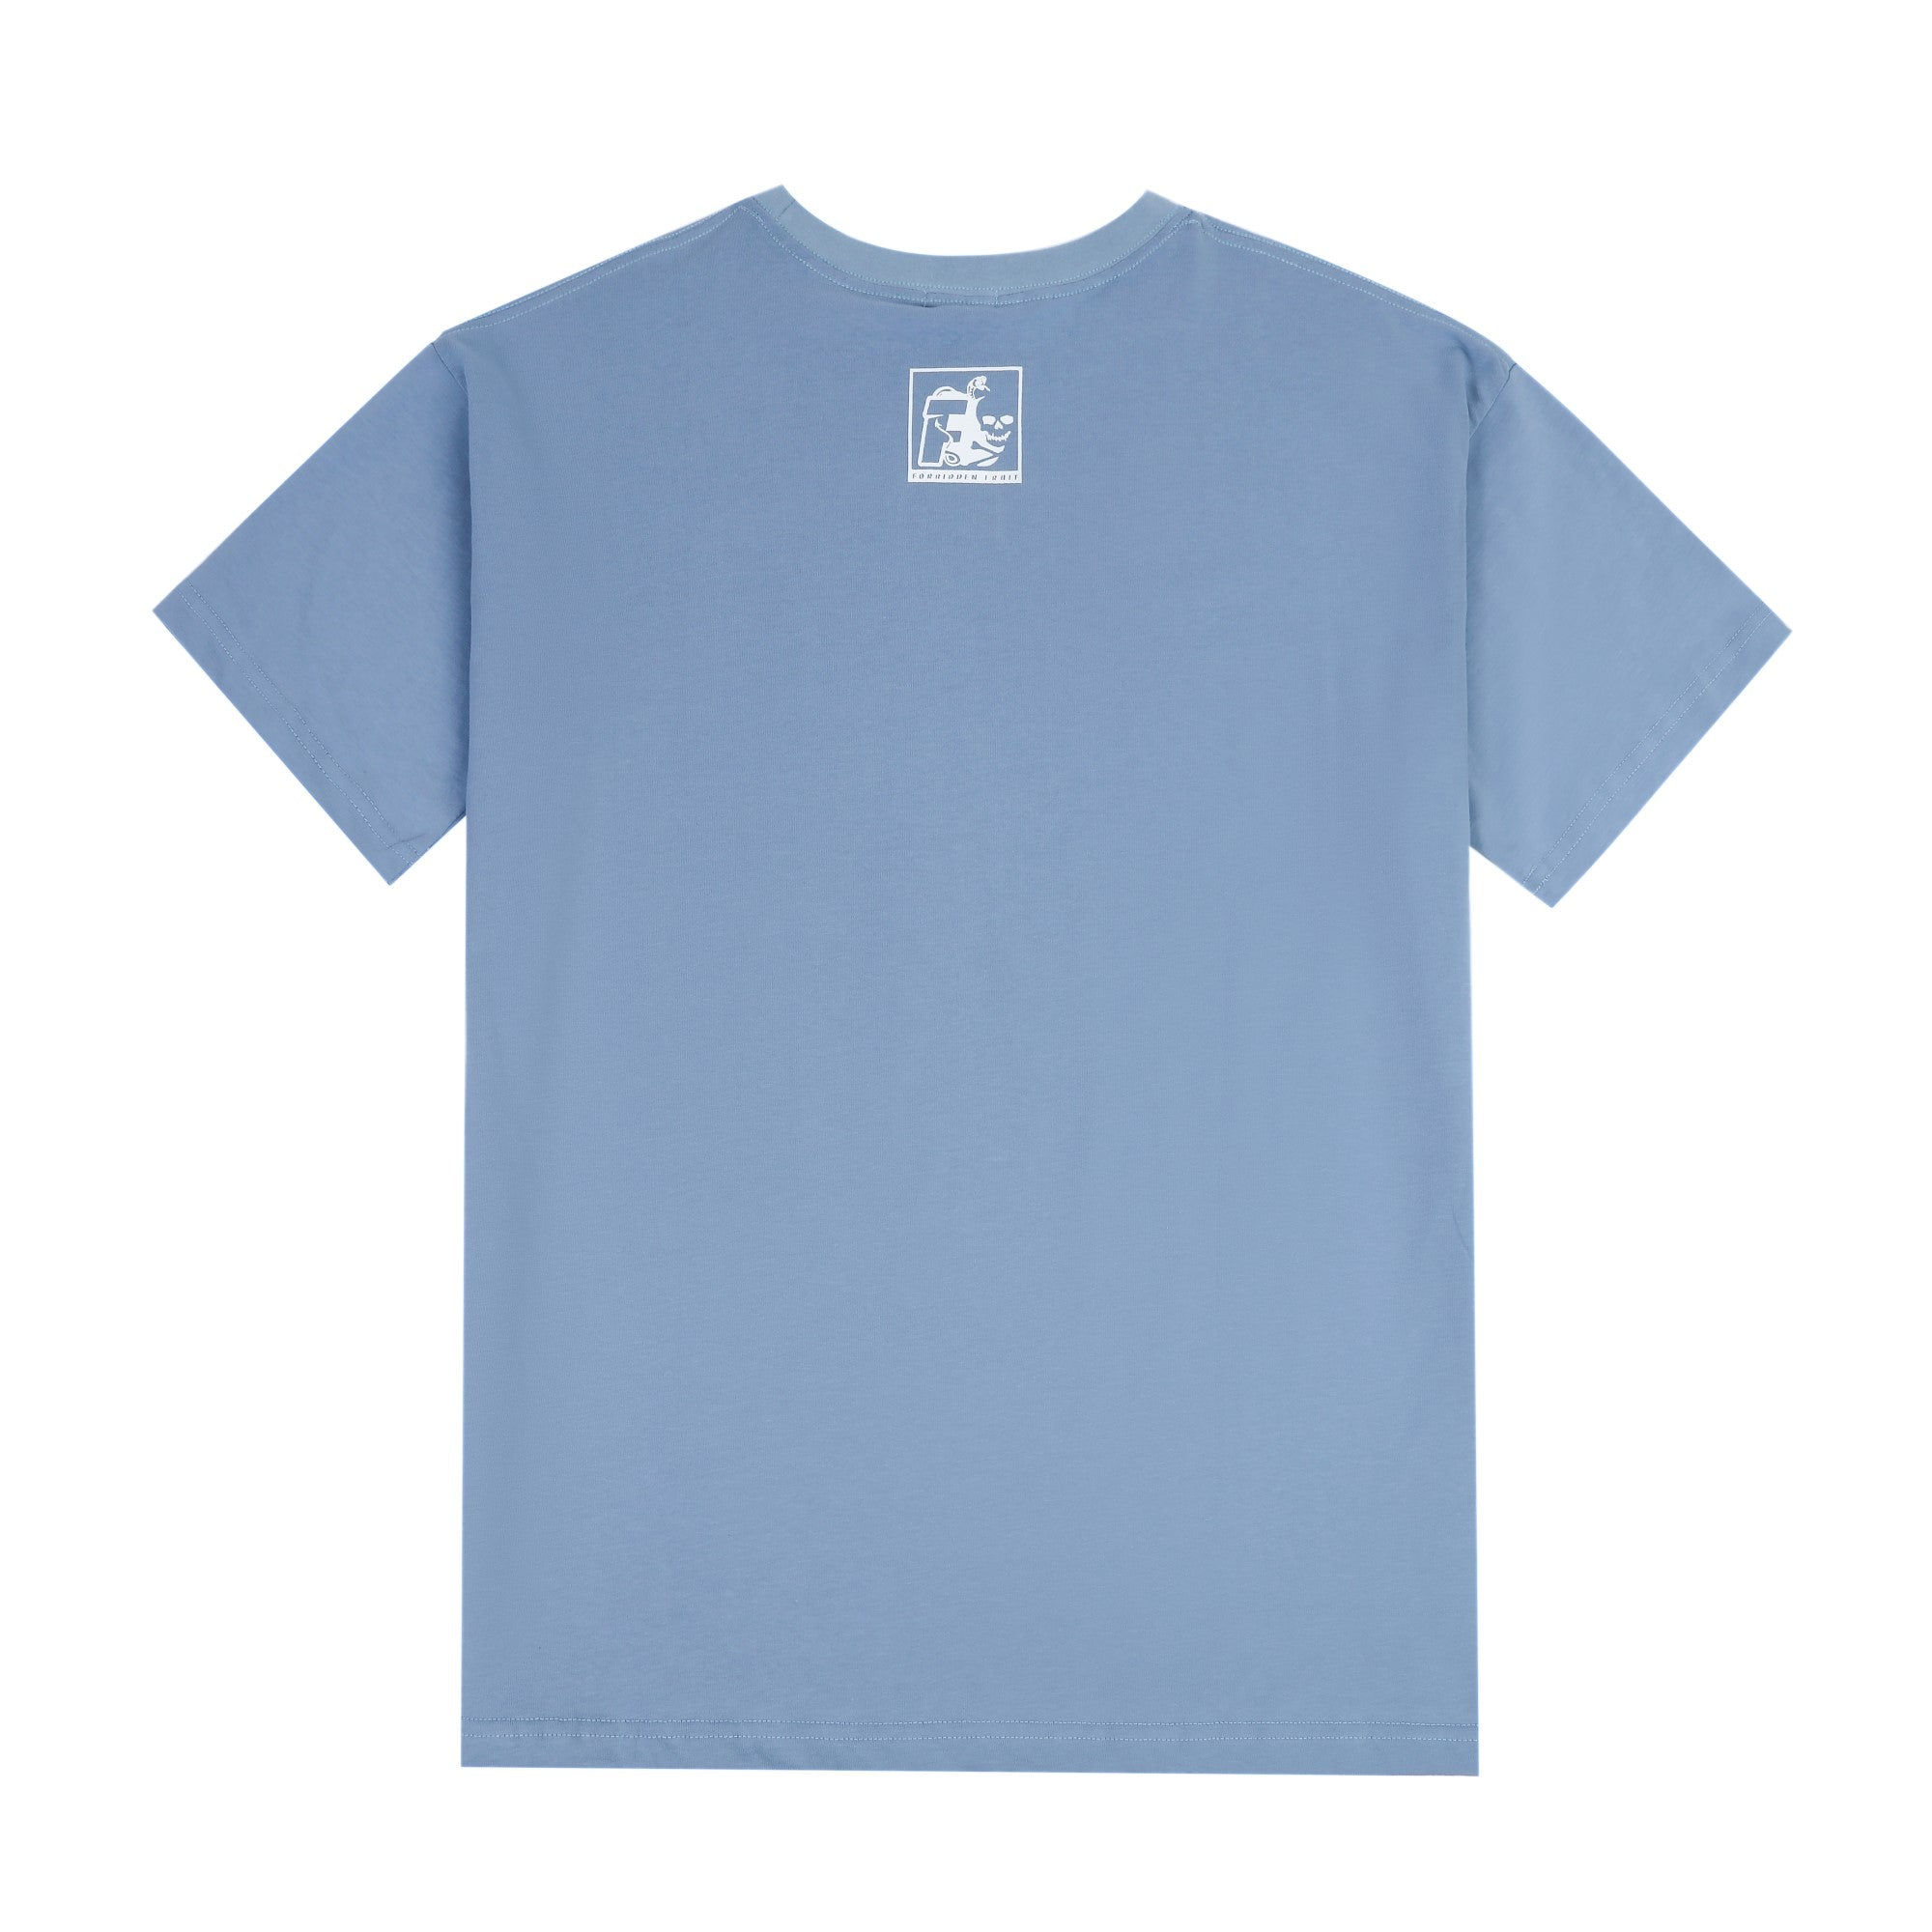 Vertical City T-shirt - Blue